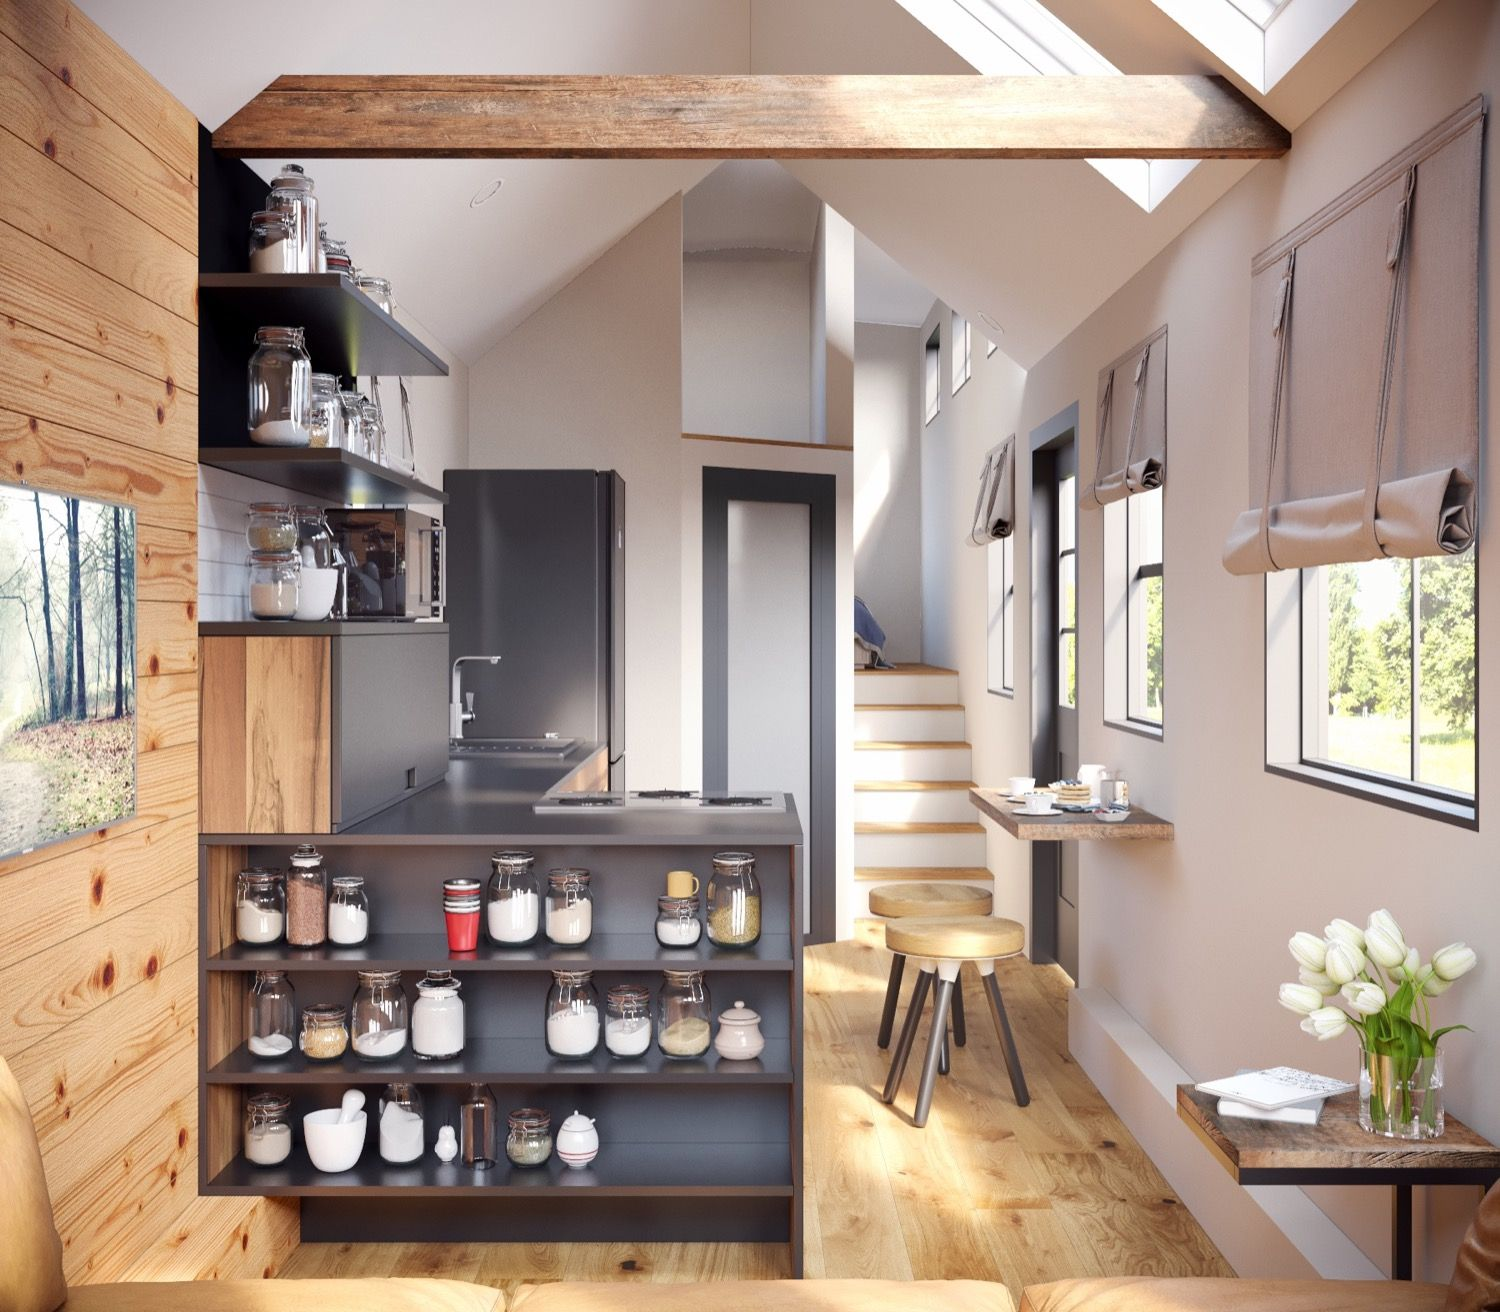 The Goose Tiny House by Tiny Heirloom | Tiny house | Pinterest